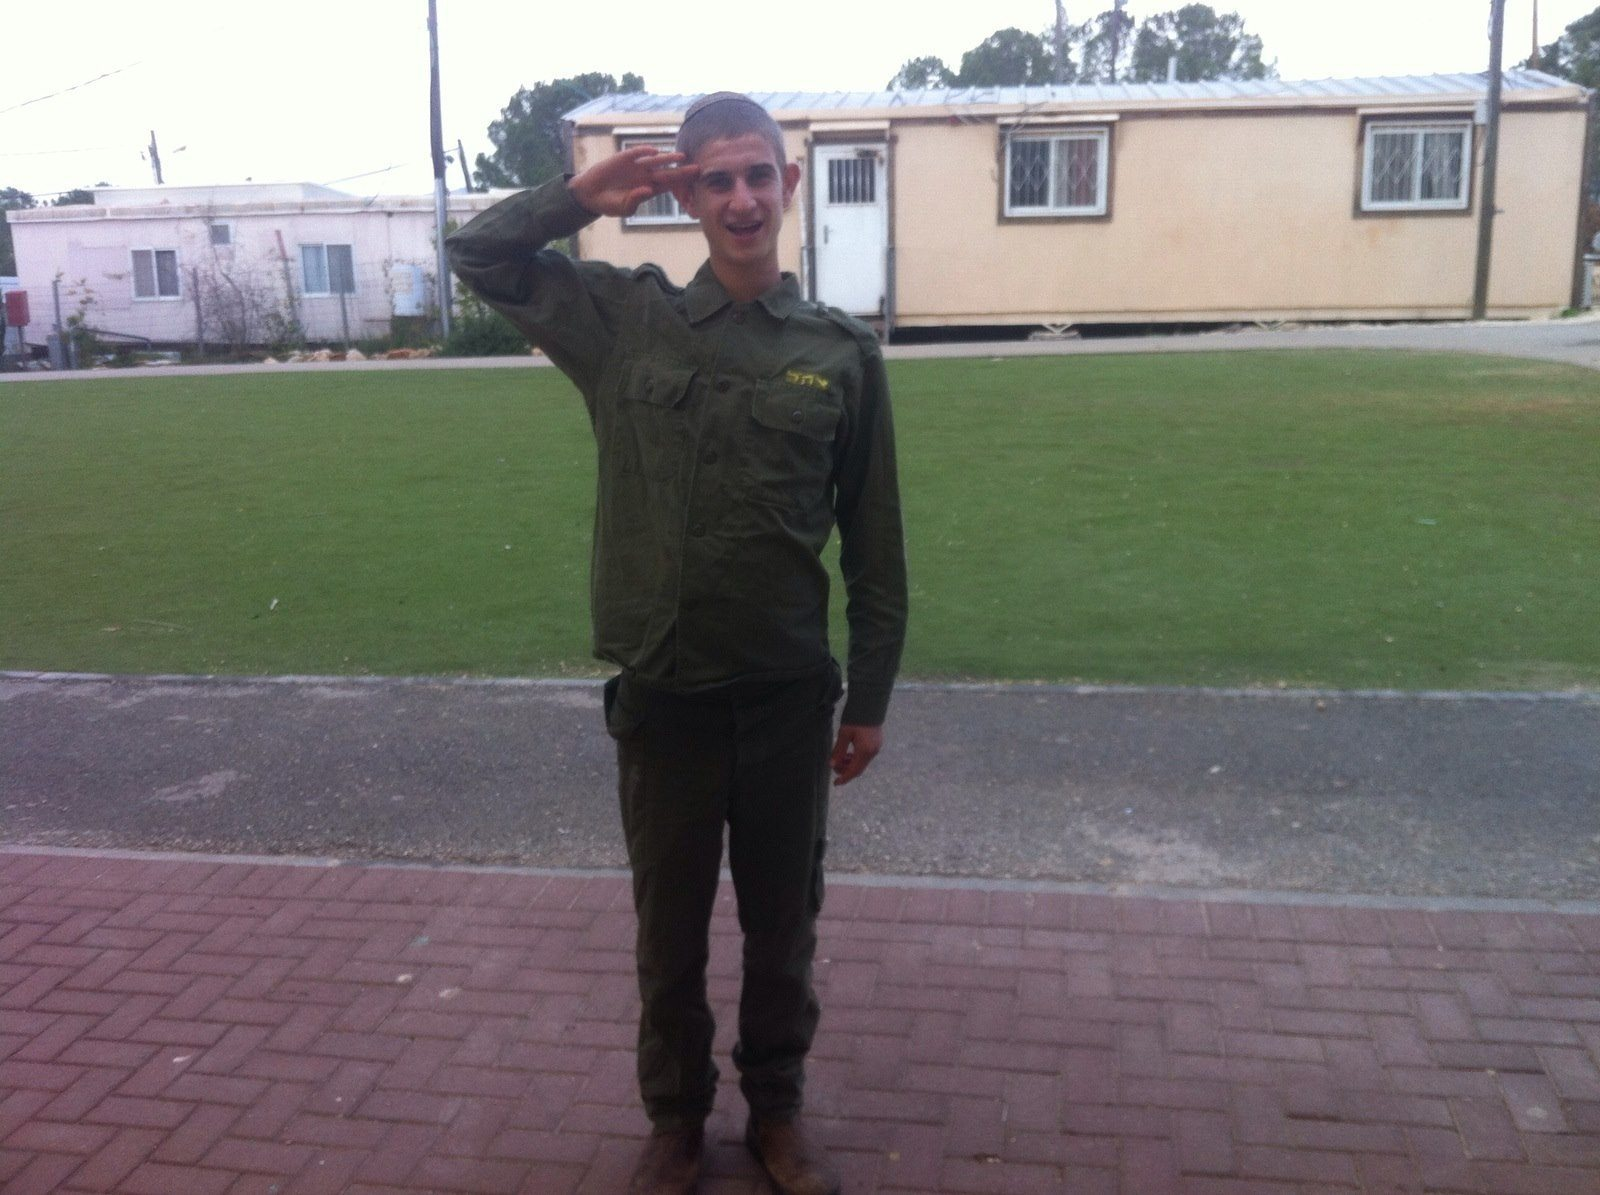 IDf soldier with special needs salutes in uniform